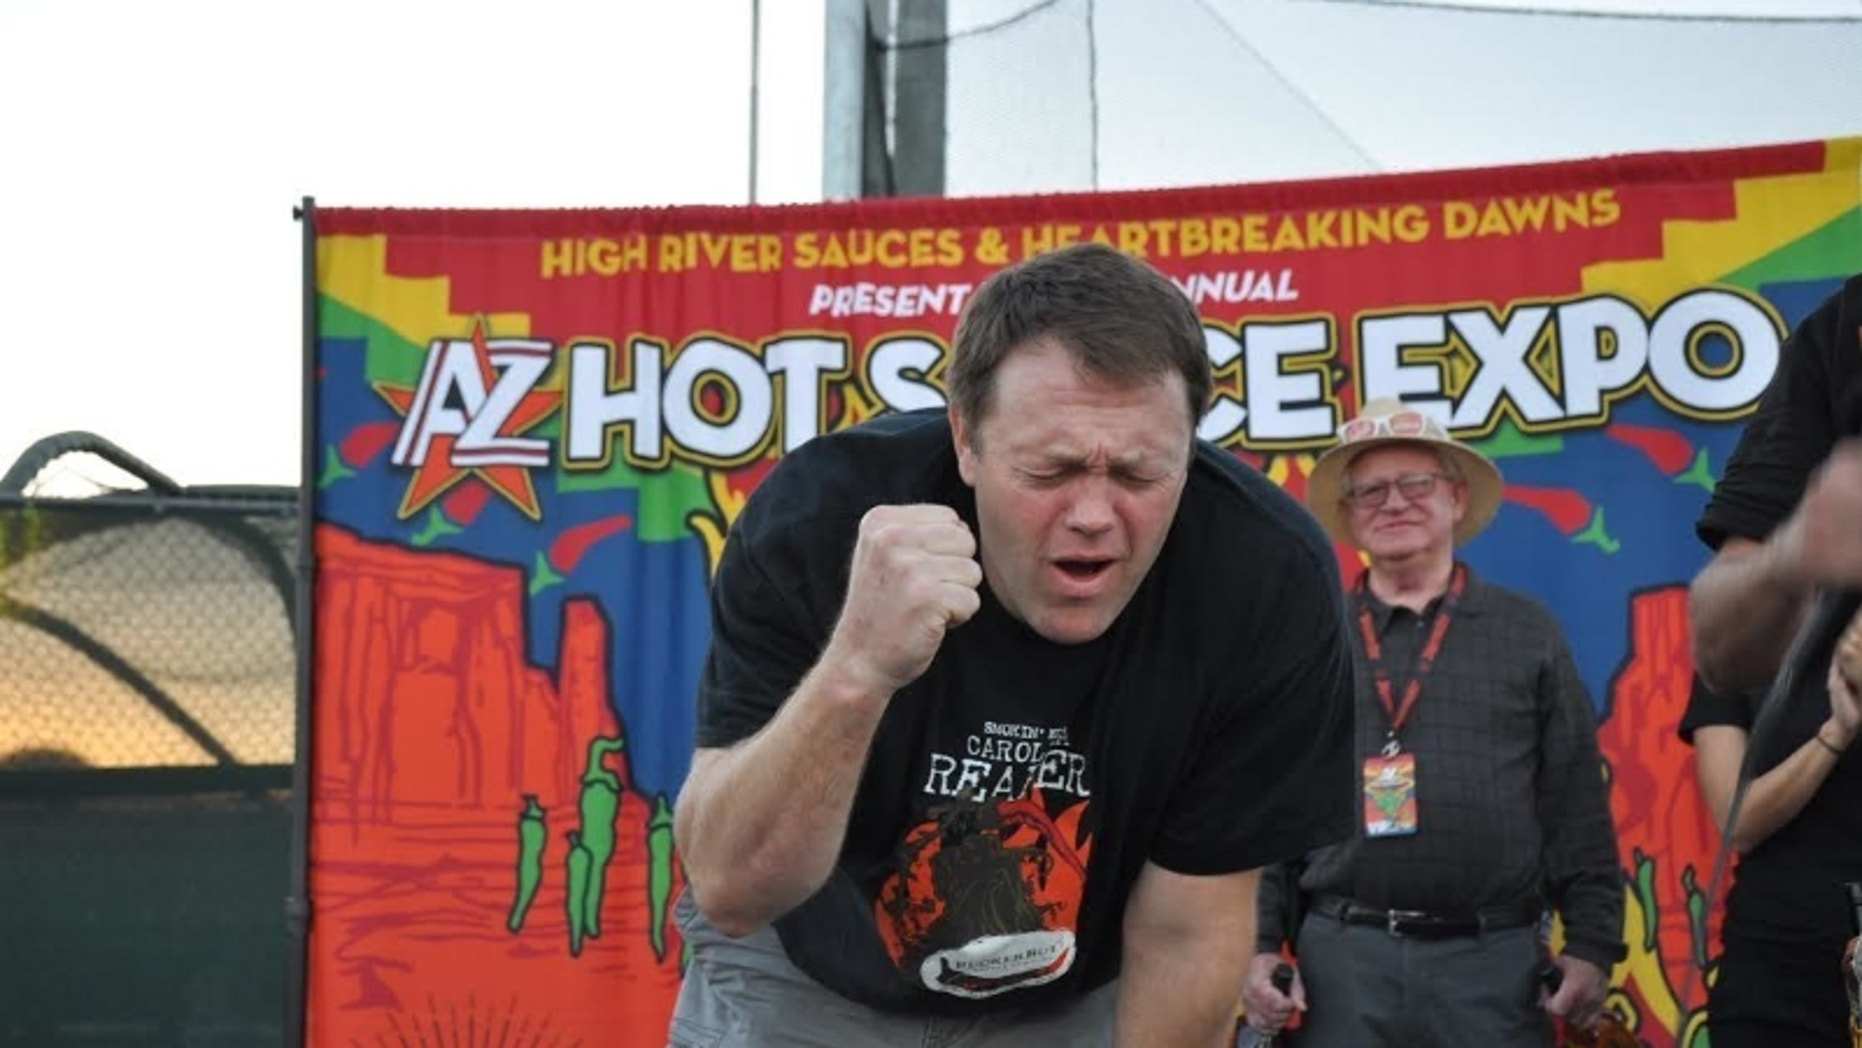 Greg Foster of Irvin, Calif. feels the burn after consuming 120 grams of Carolina Reaper peppers.